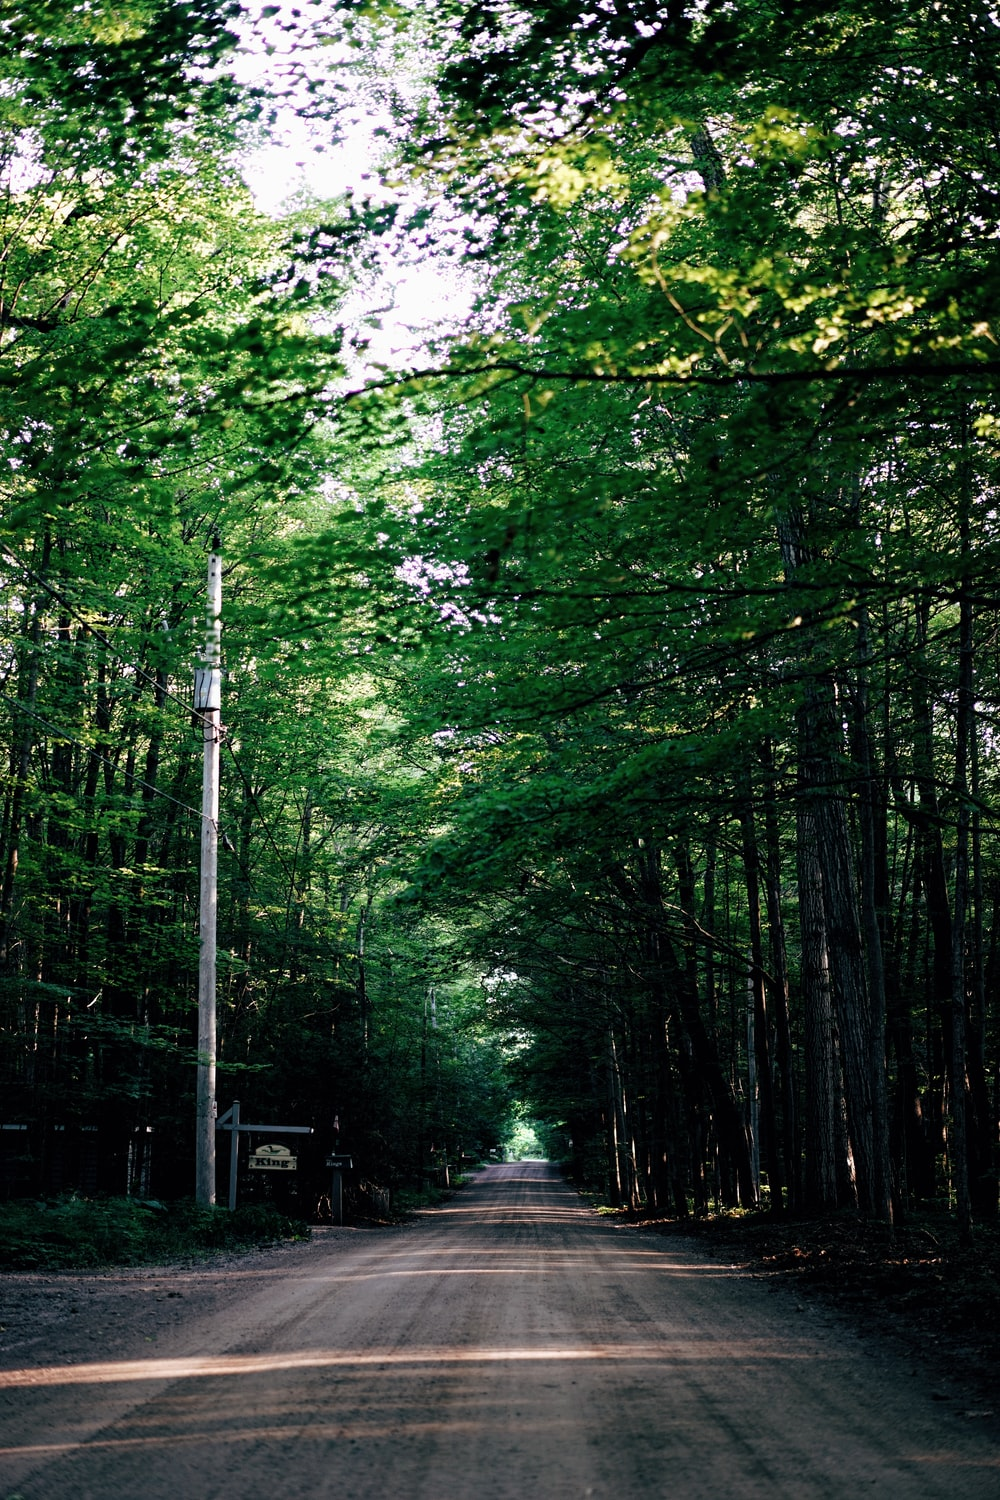 dirt road between tall trees during daytime